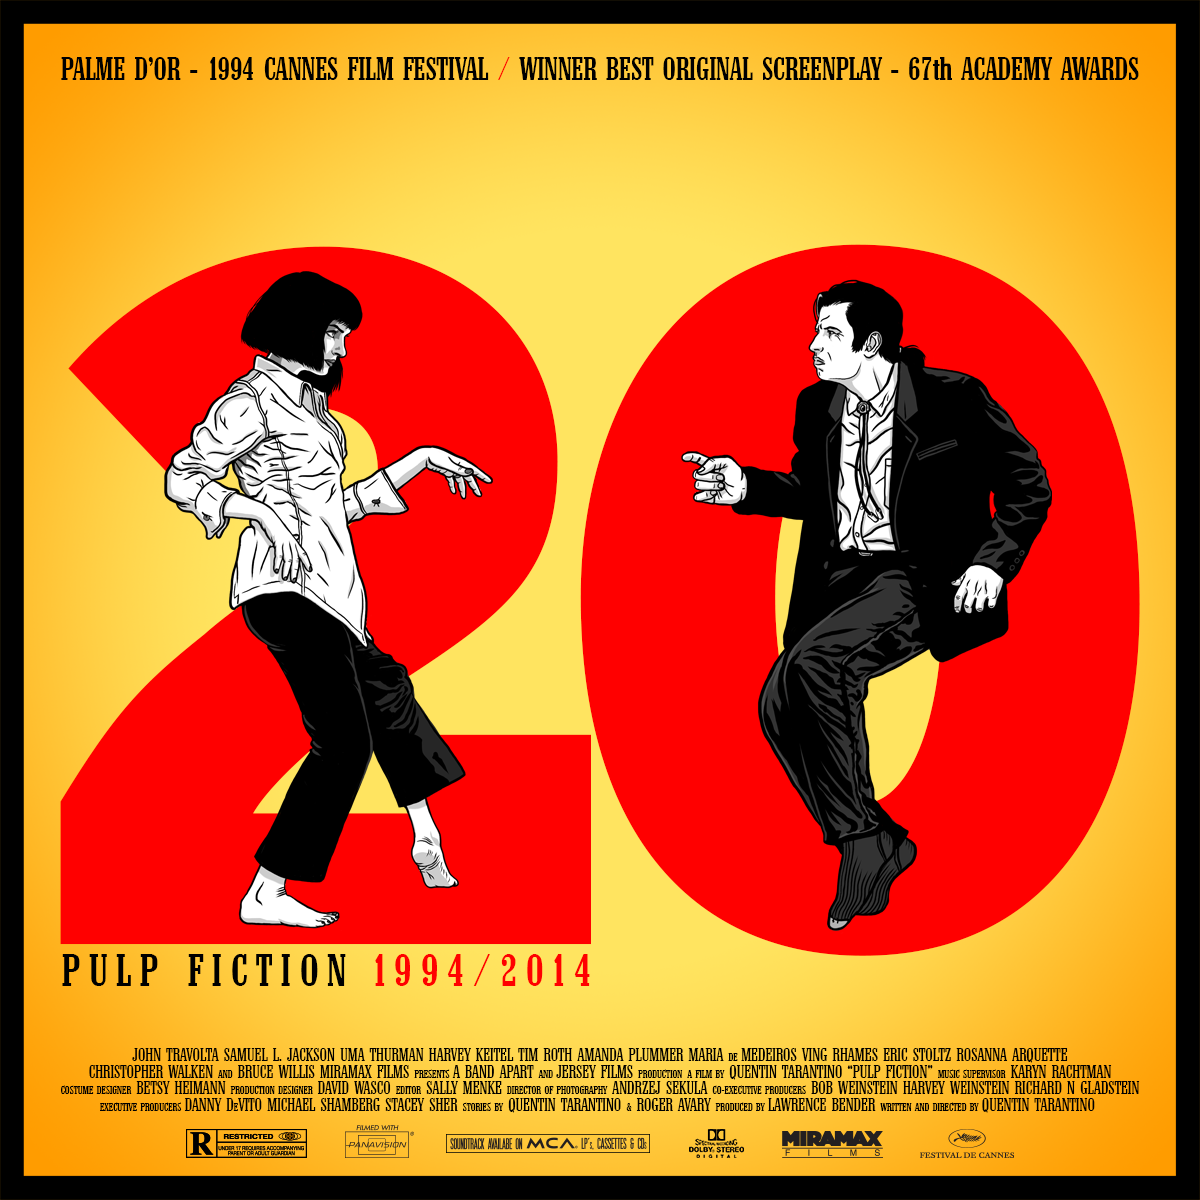 Pulp Fiction 20th Anniversary